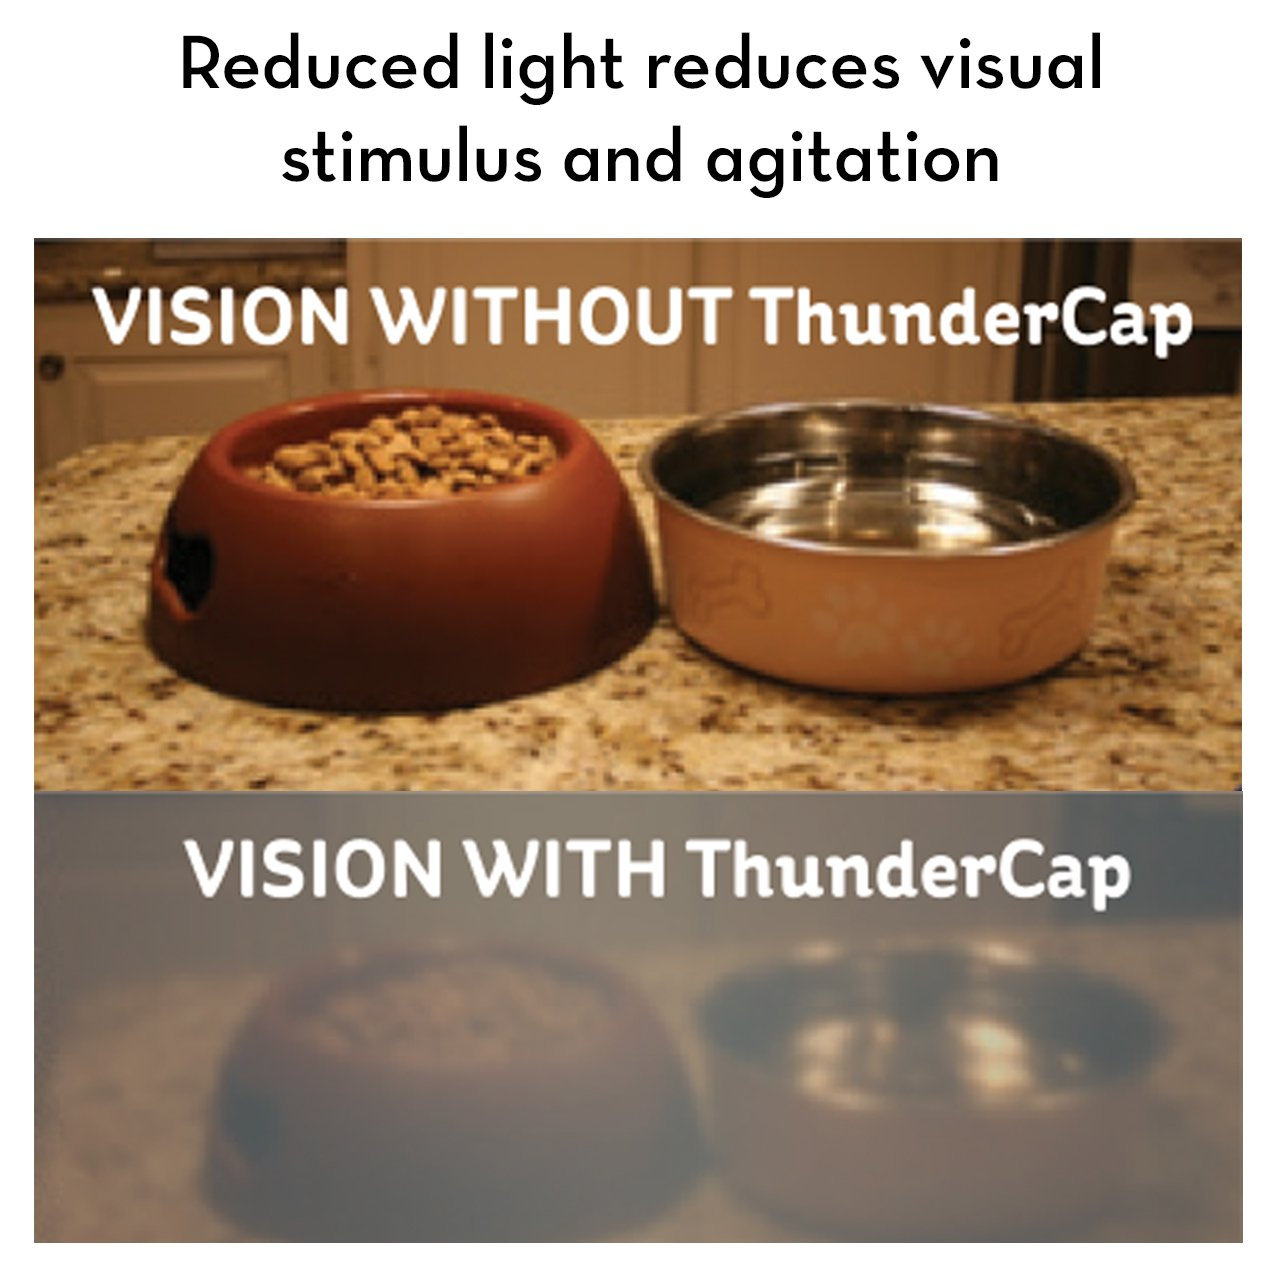 ThunderCap - Dog Calming Cap - How it Works | T03-GCCXS | T03-GCCS | T03-GCCM | T03-GCCL